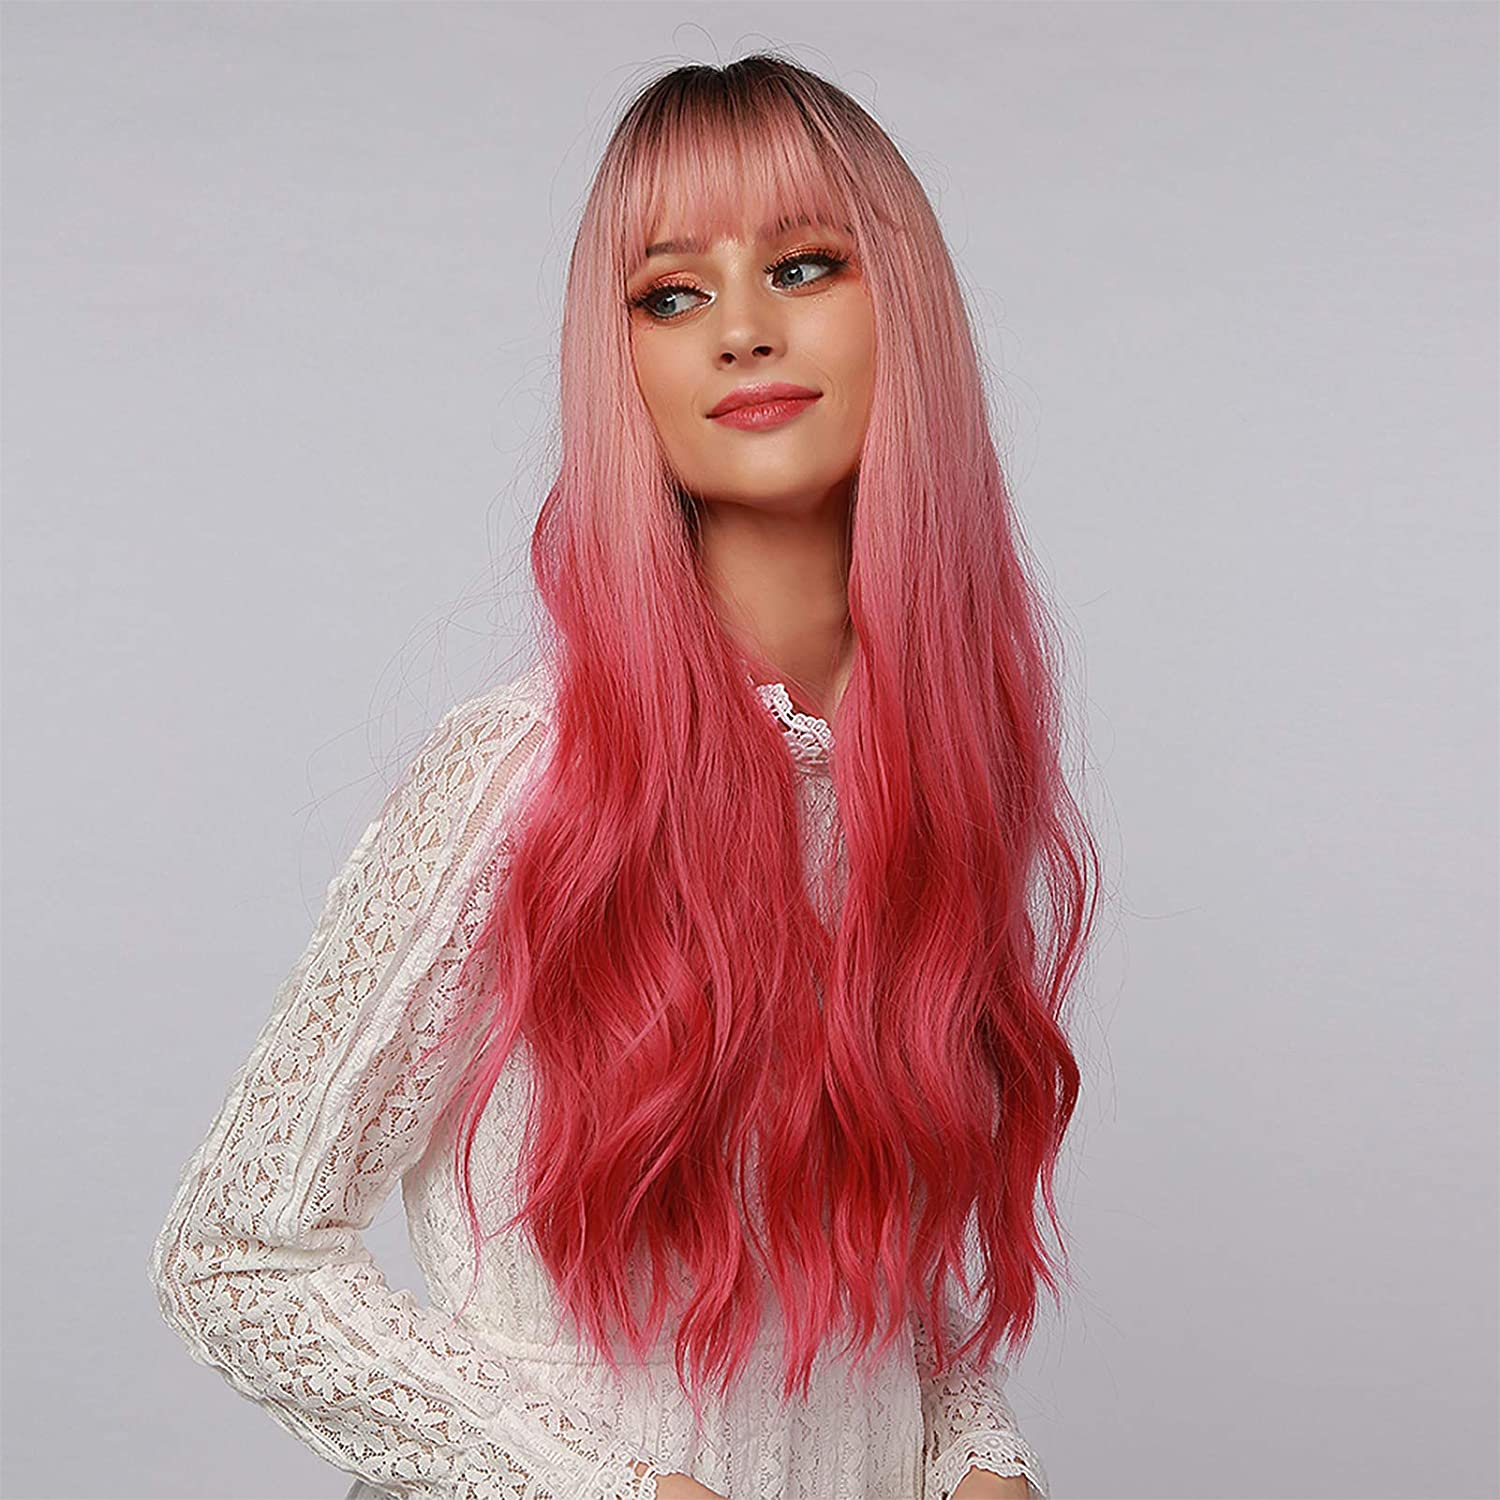 Long Red Wig for Women Natural S Max 70% OFF Virginia Beach Mall Wavy Bangs Ombre with